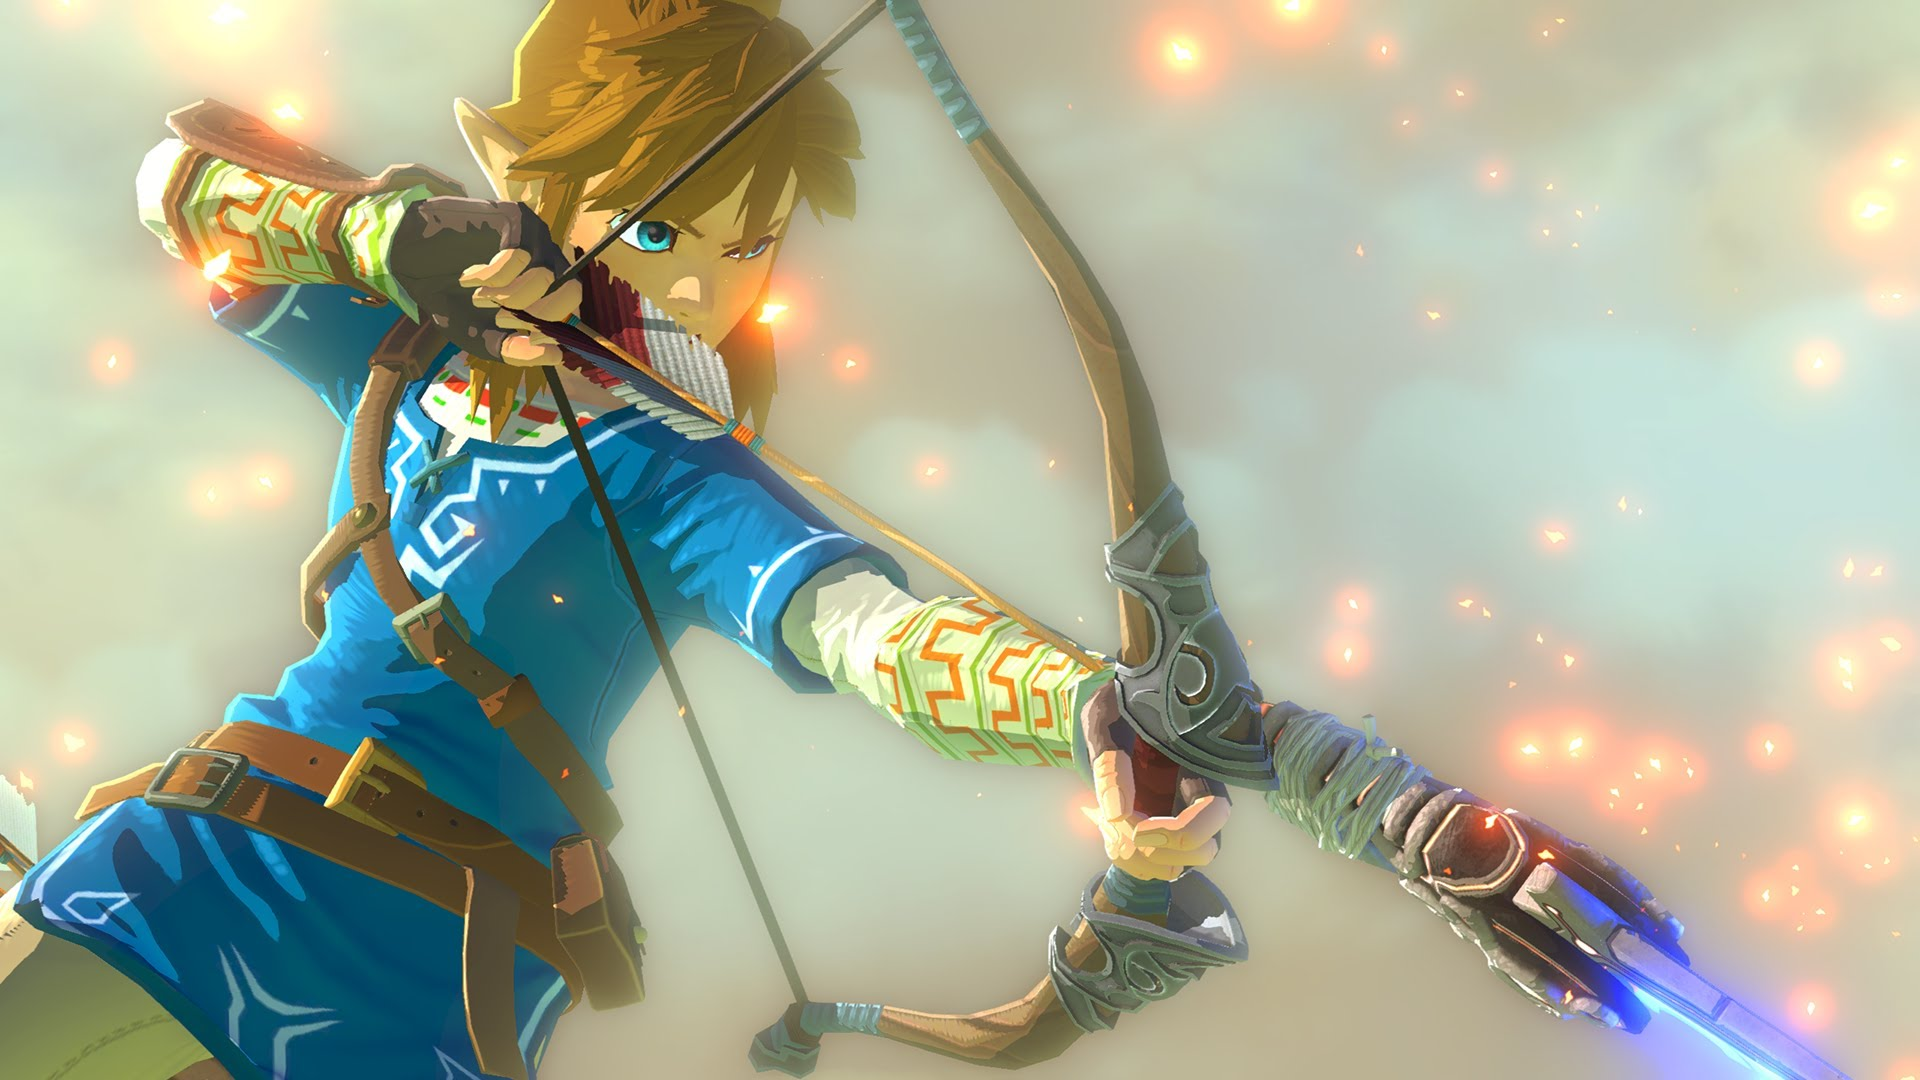 Screenshot from the upcoming Legend of Zelda for the Wii U.